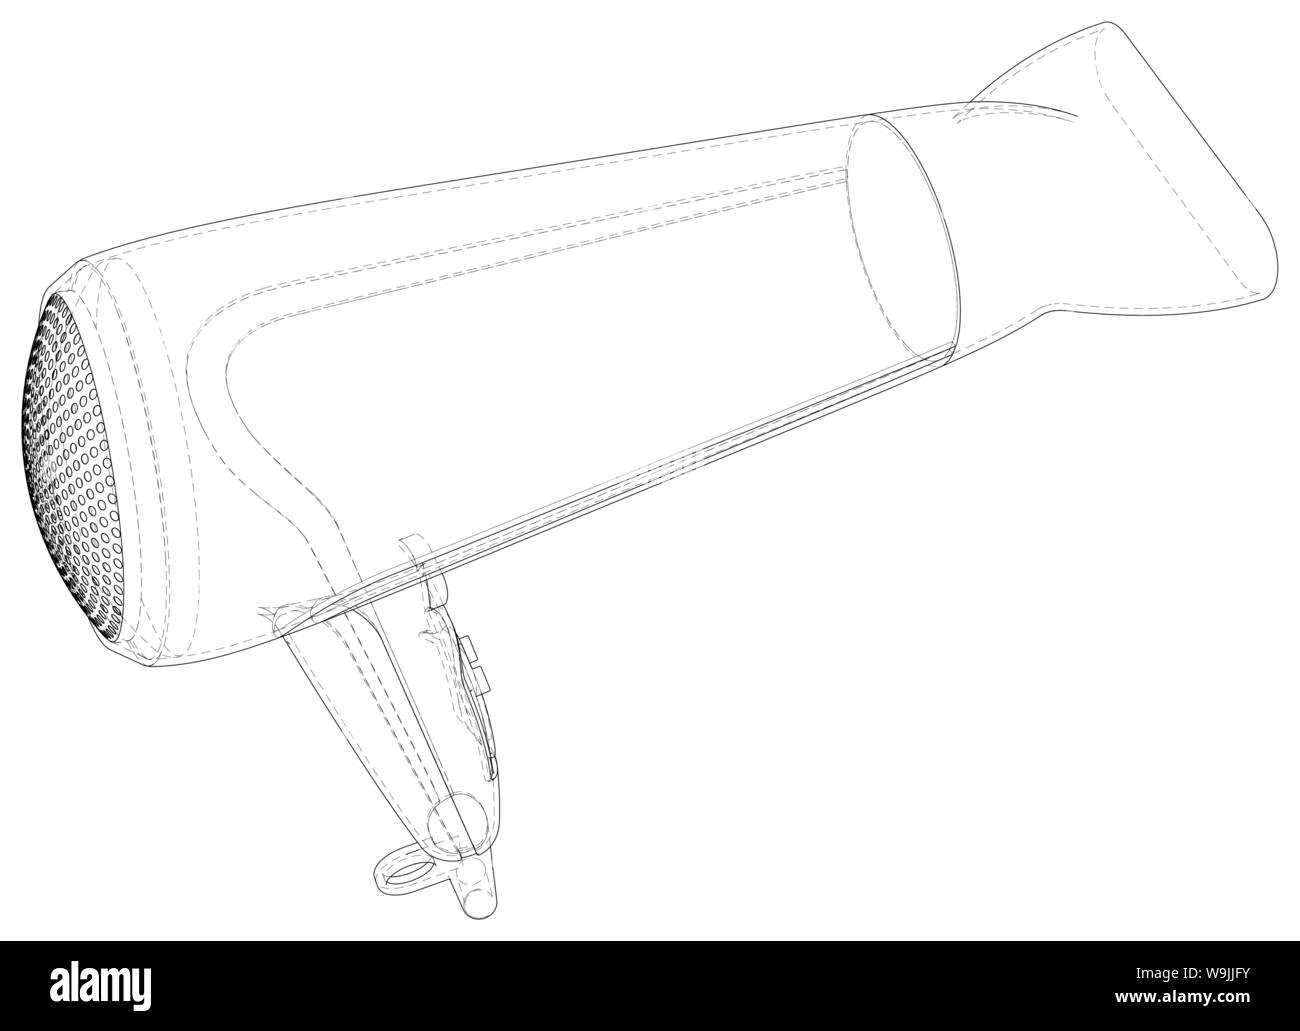 Blow Dry Hair Black and White Stock Photos & Images - Page 2 ... Hair Dryer Wiring Schematic on